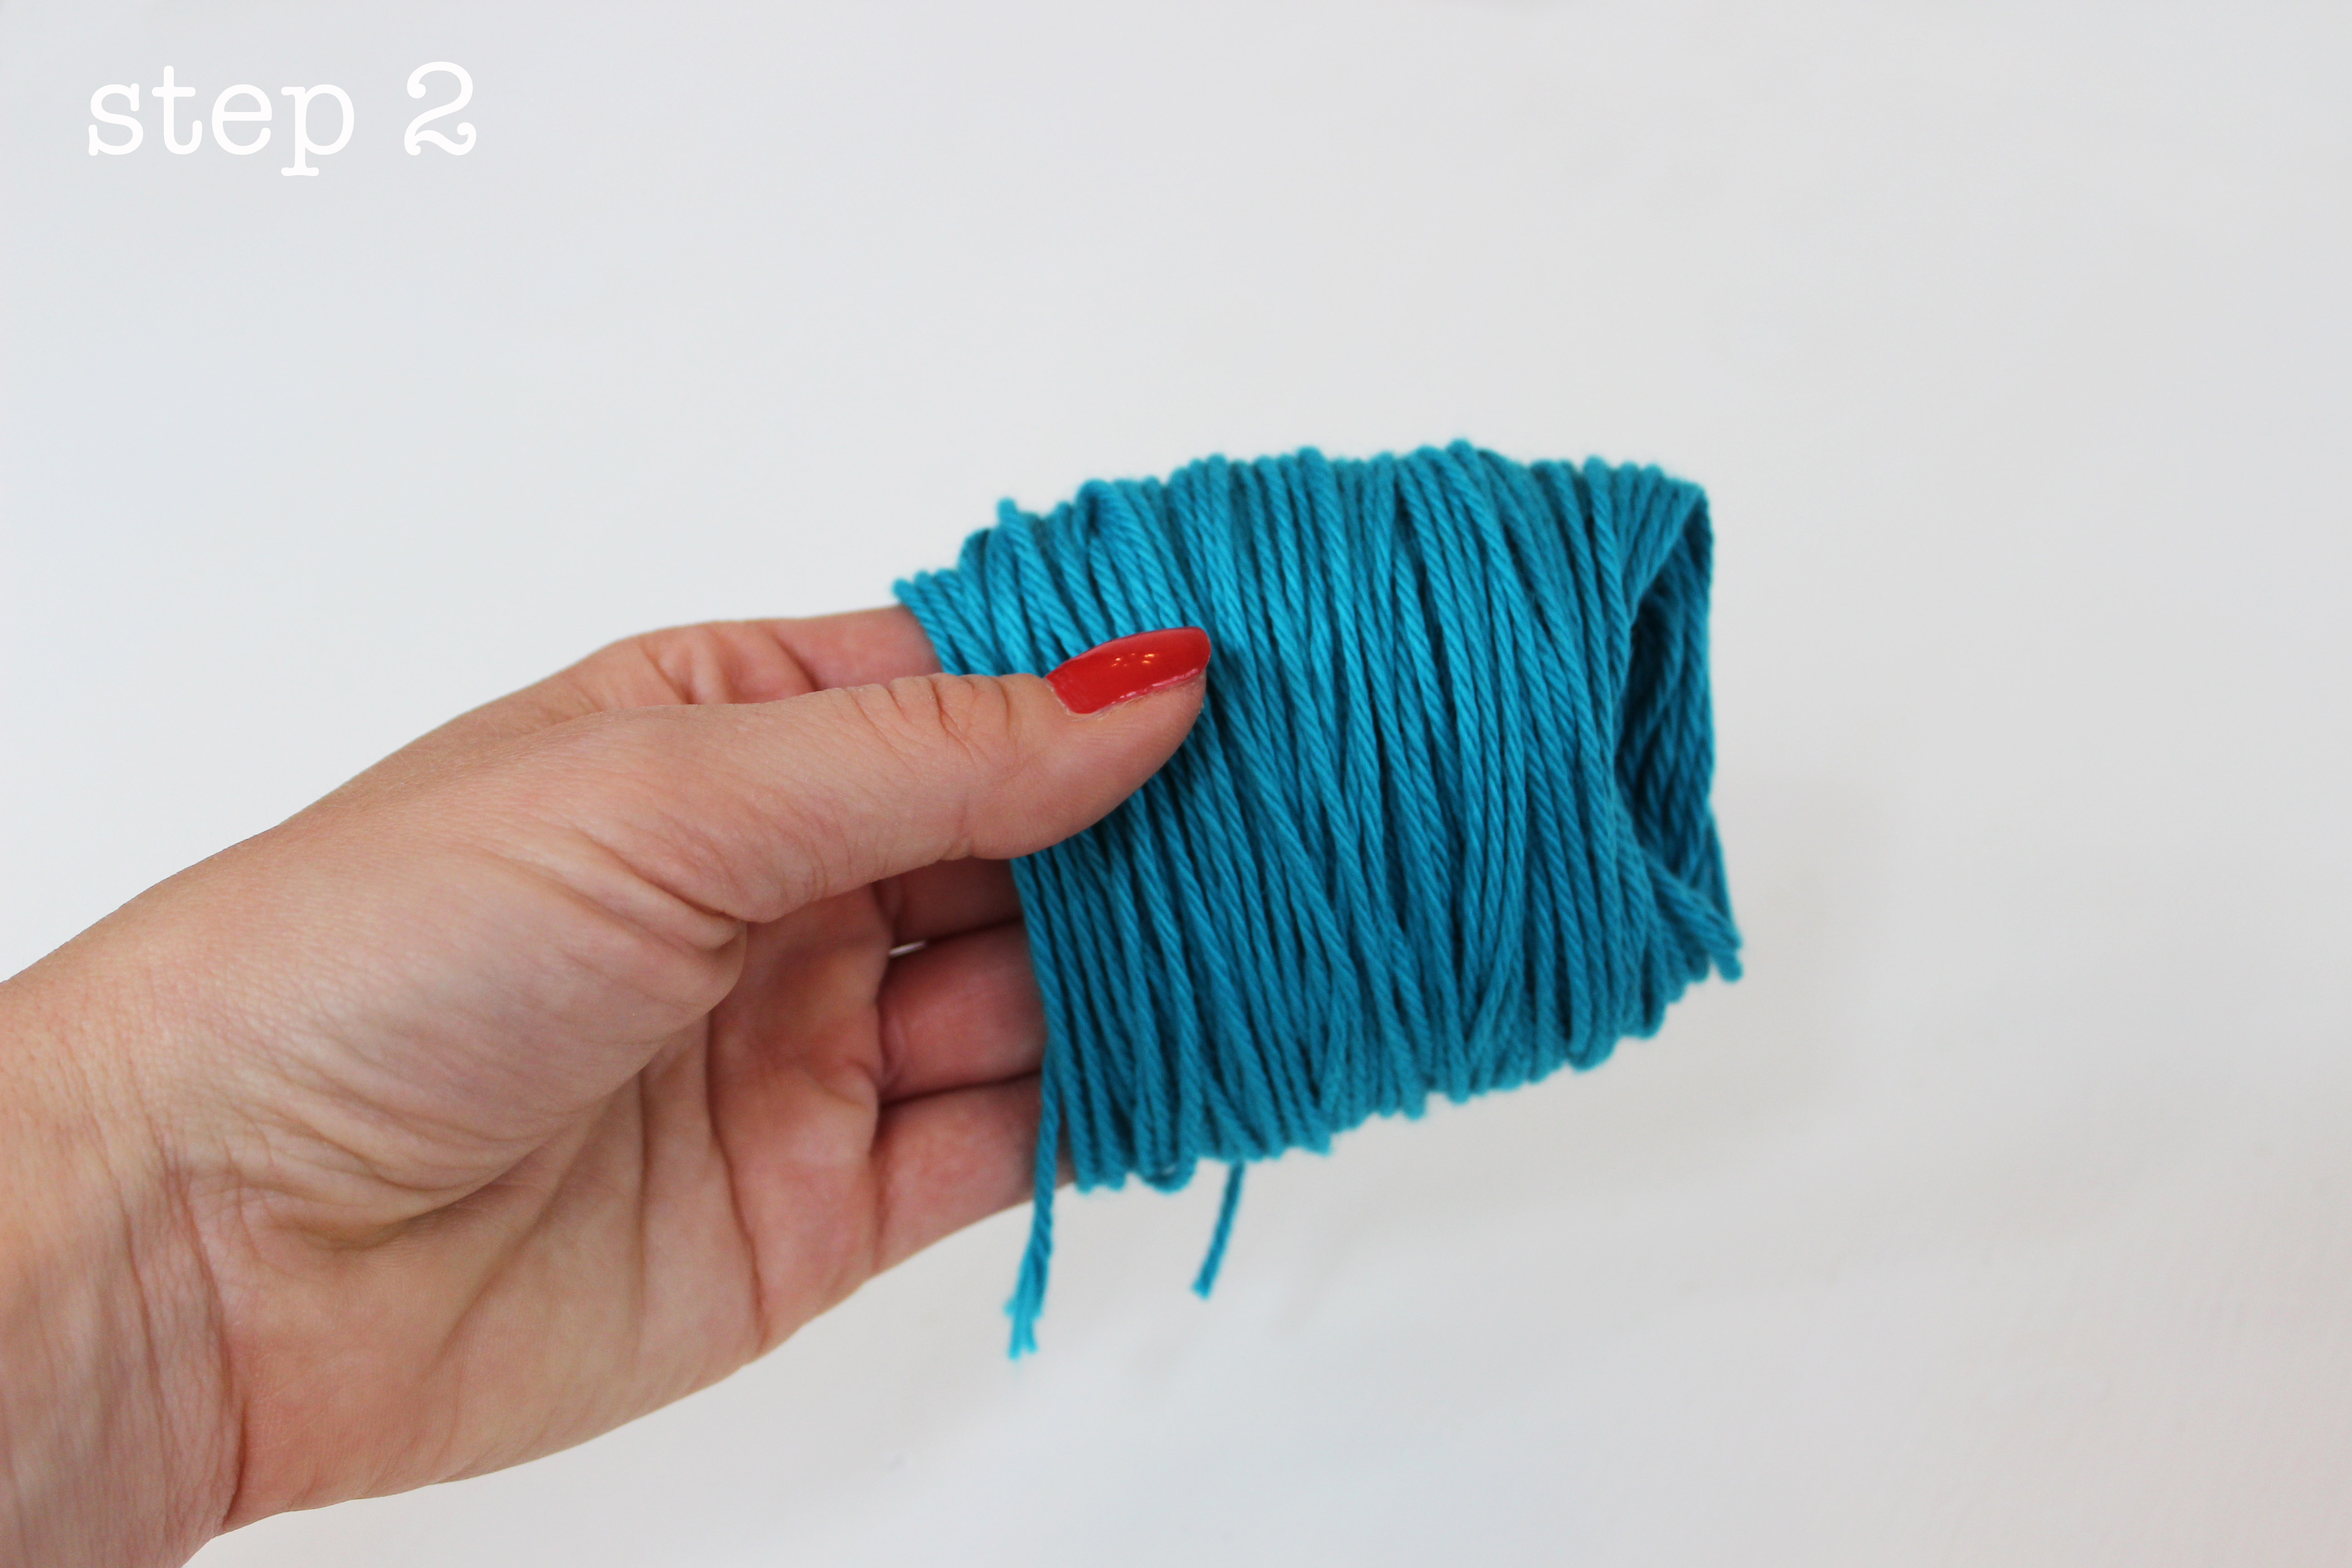 how to make yarn pom poms with your fingers